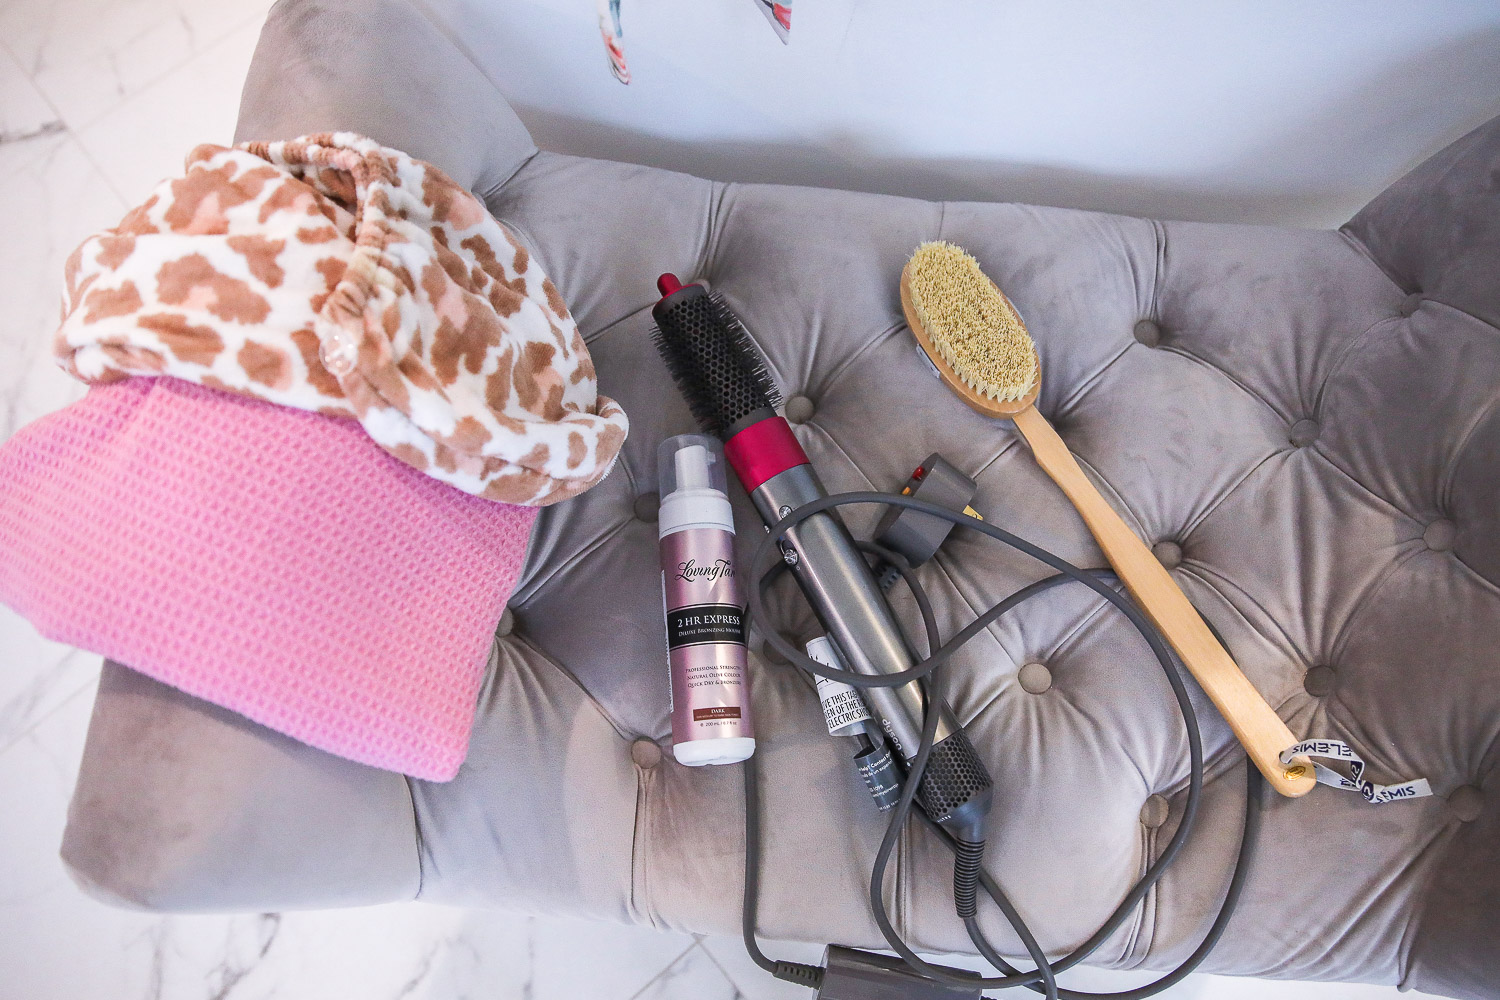 dyson airwrap review, master bathroom white and gold, Emily Gemma | Nighttime Routine by popular US beauty blog, The Sweetest Thing: image of a leopard print body towel, Elemis body exfoliating body brush, and pink textured towel on a grey velvet tuft bench.